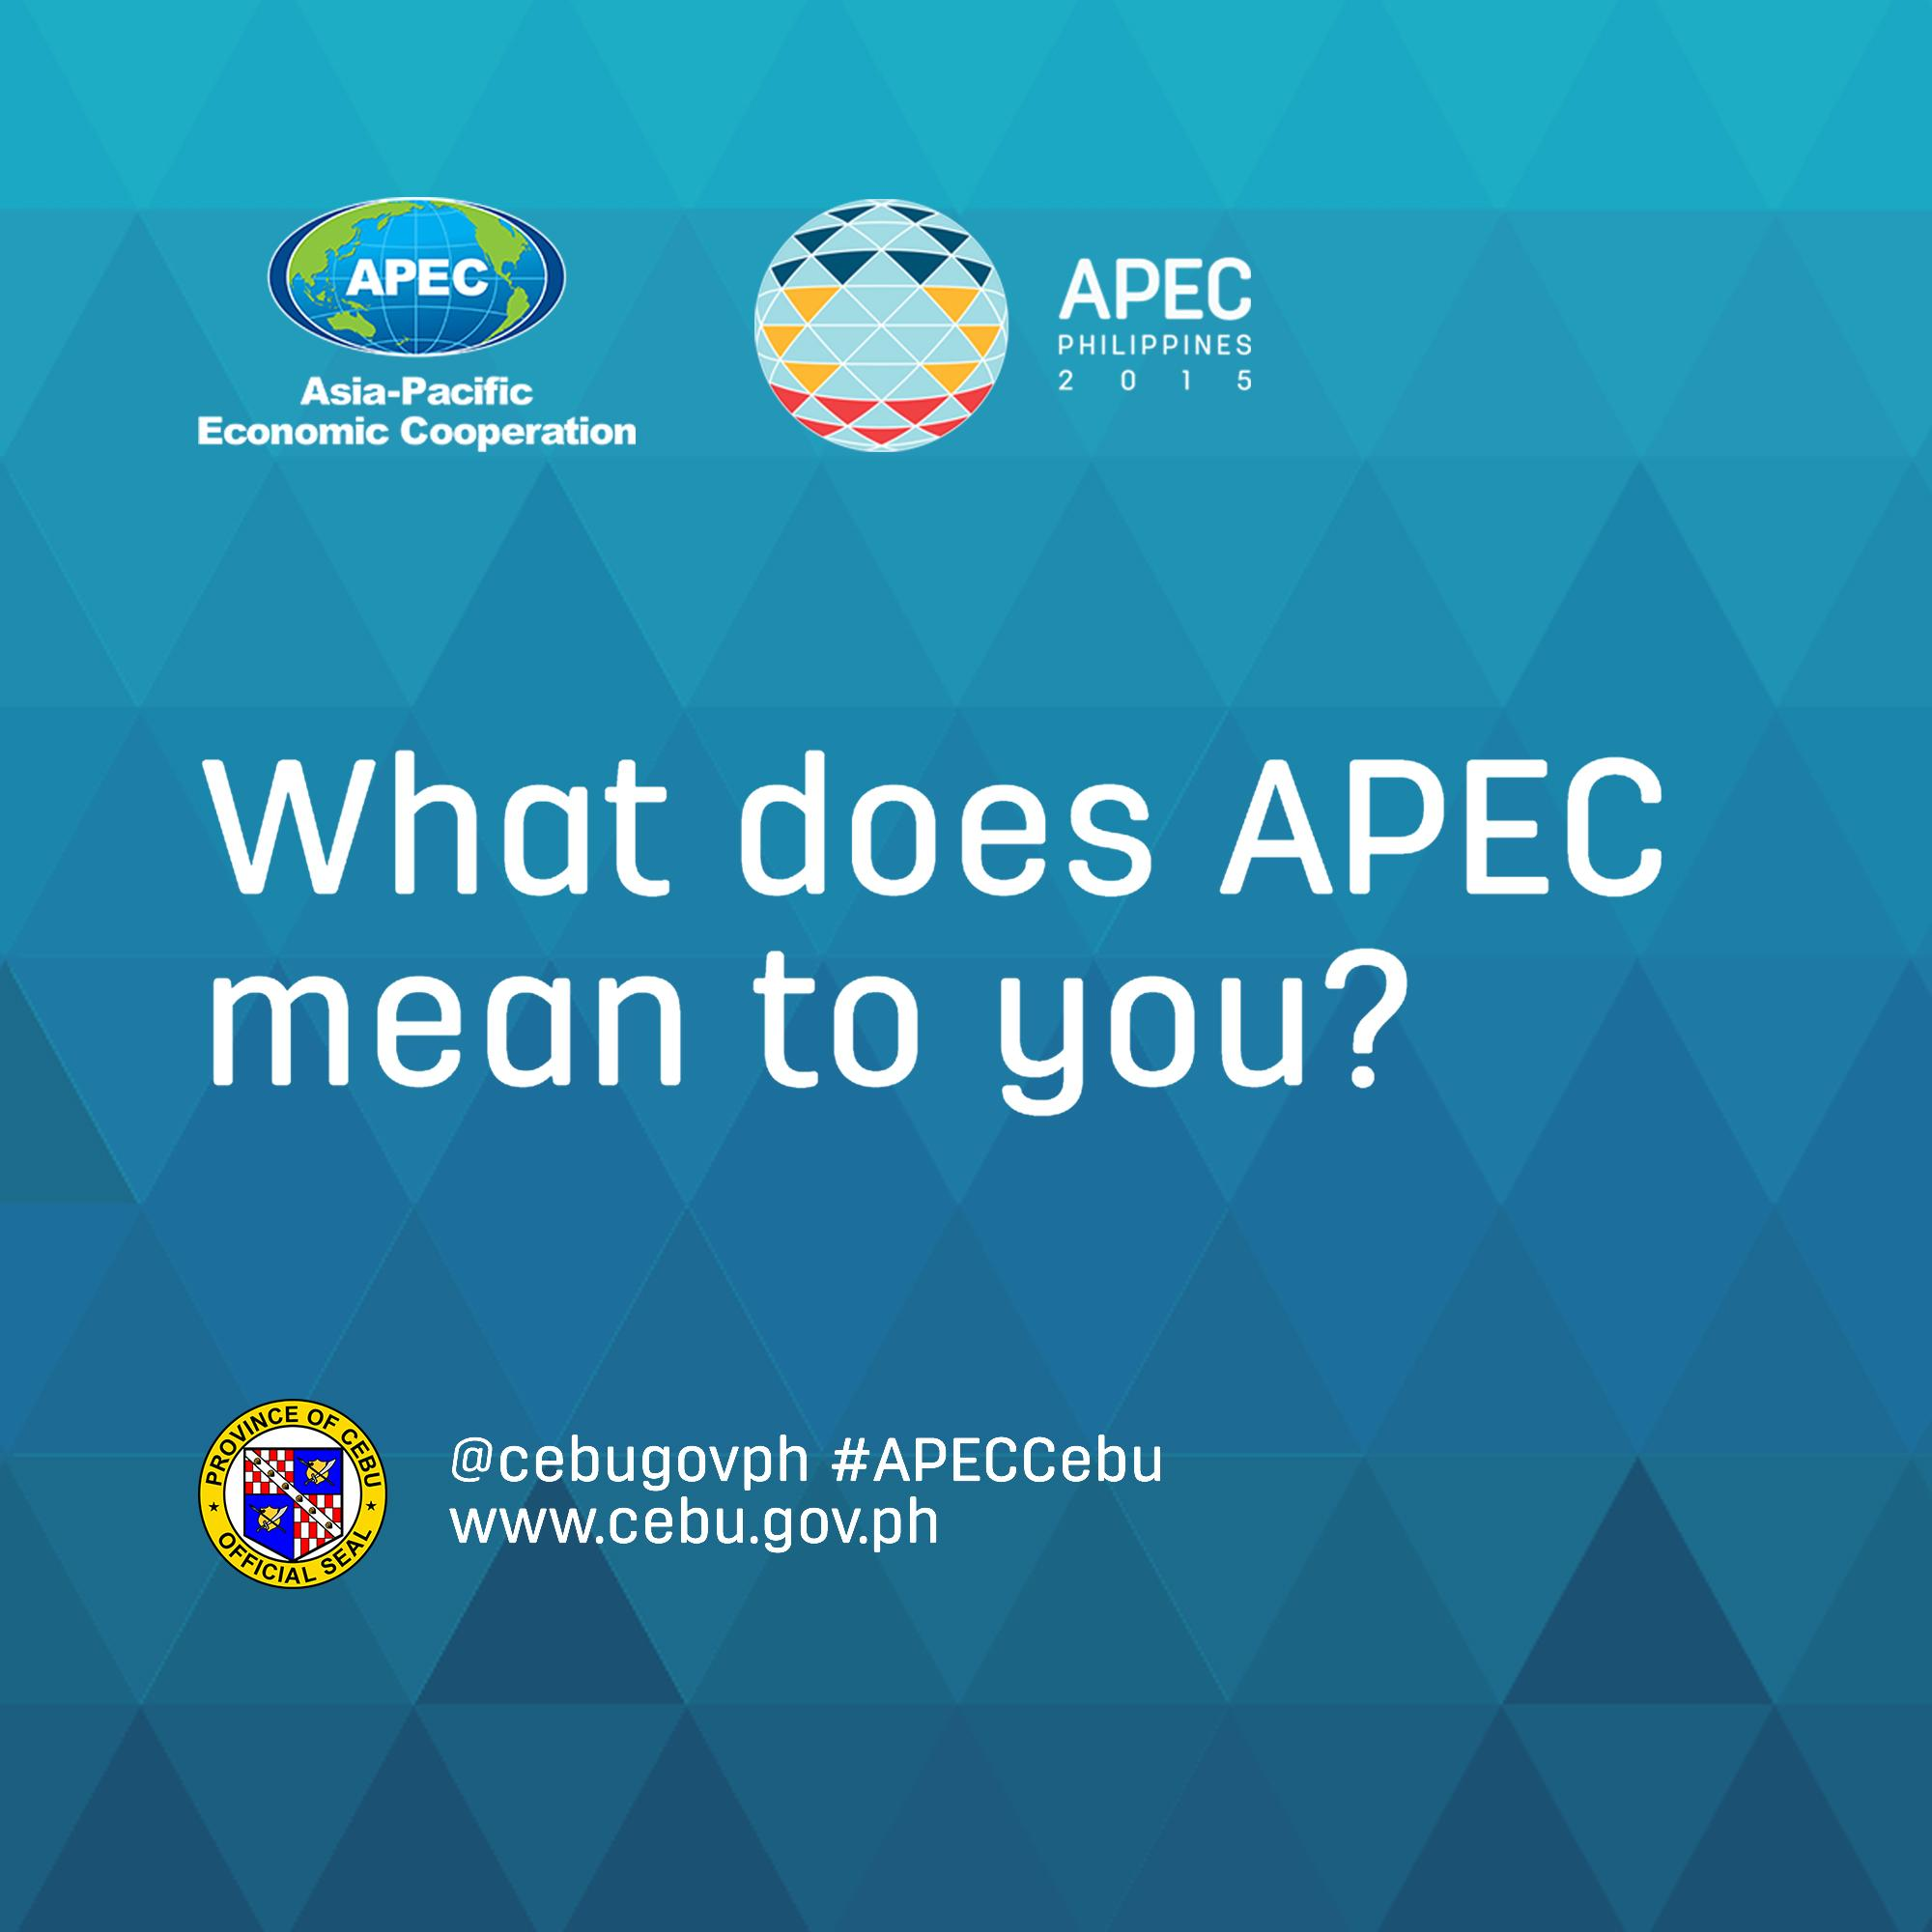 What does #APEC2015 mean to you? For more info about #APECCebu visit http://t.co/El6UB233In  @apec2015ph @APEC http://t.co/b0HpU3NBB8